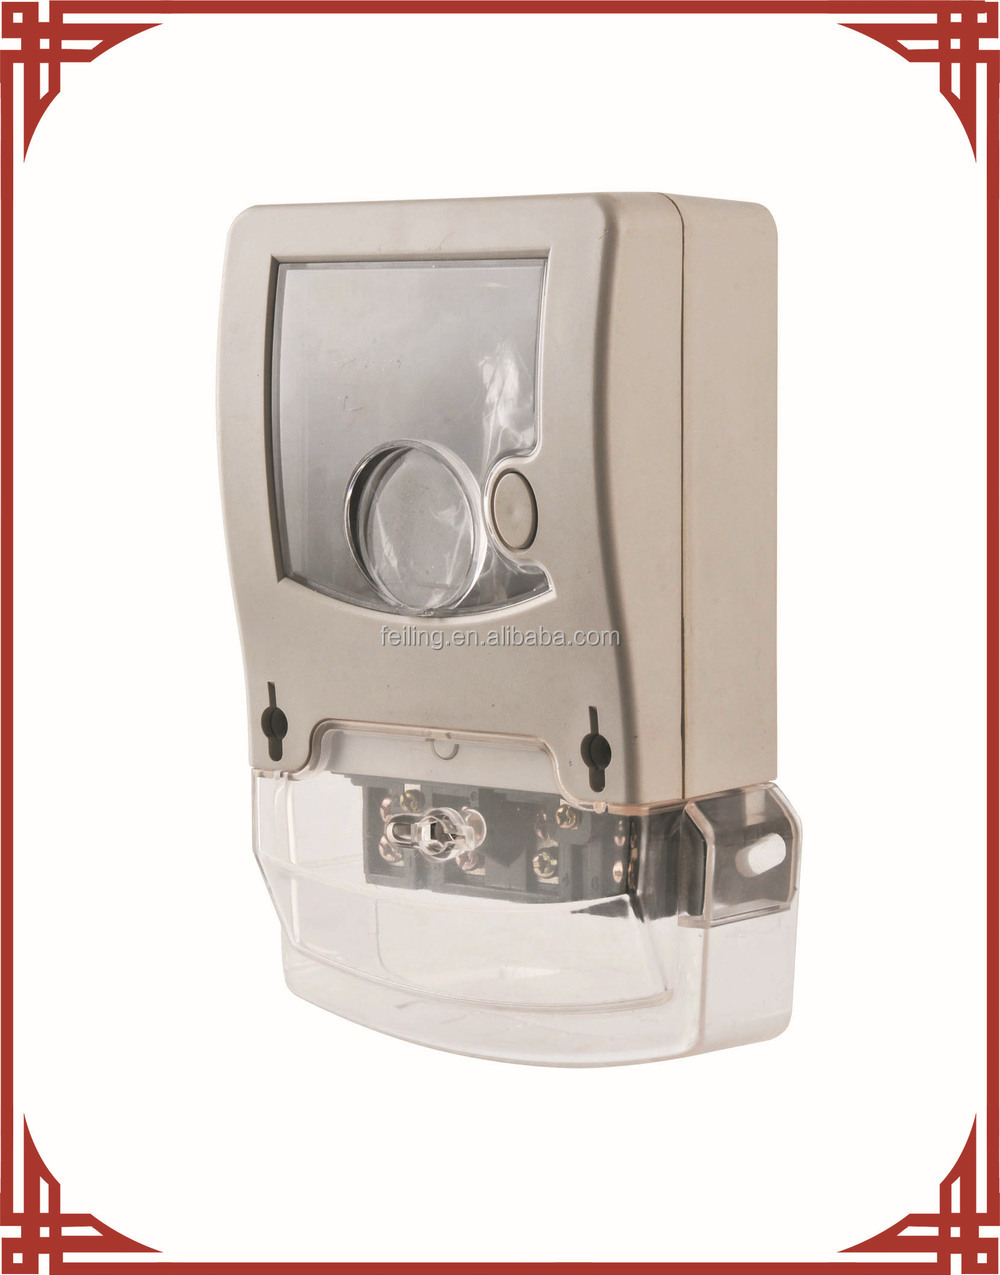 DDS-009-3 single phase clear plastic waterproof electric meter case